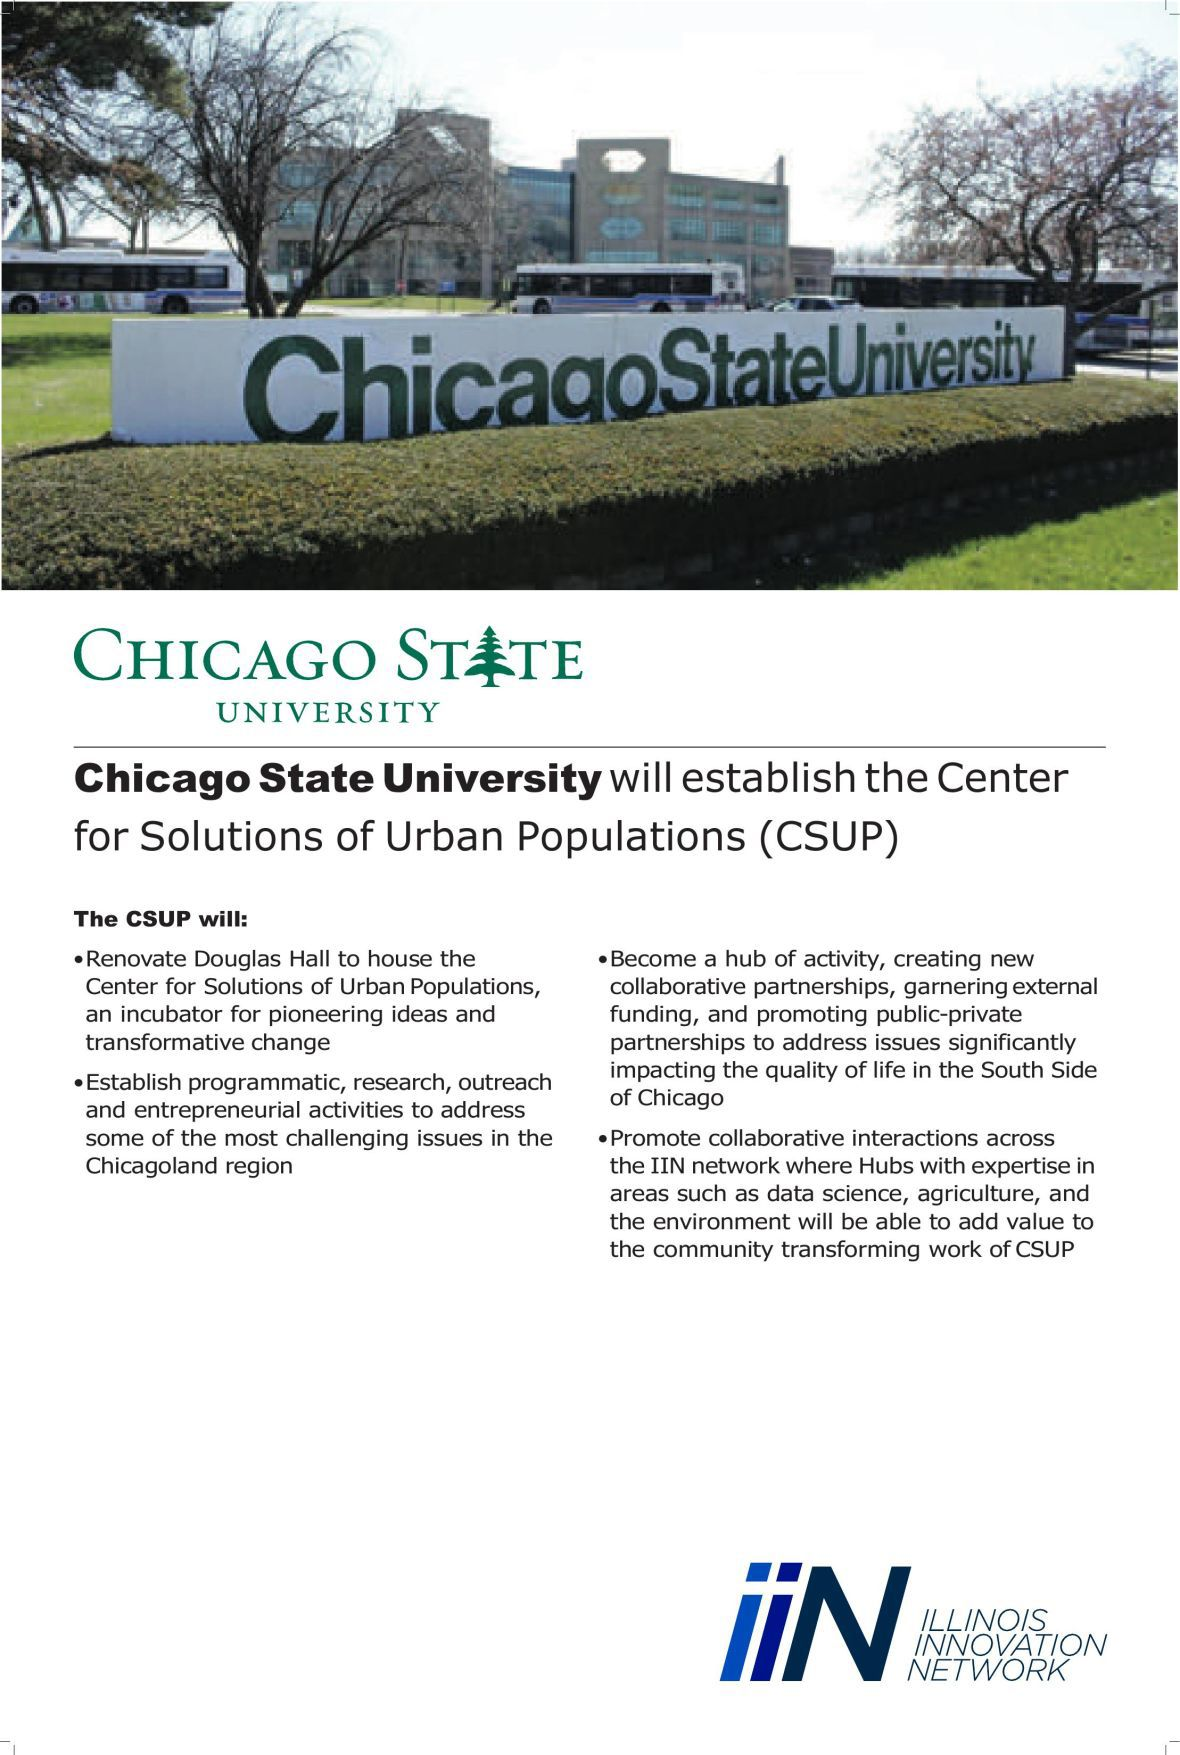 Chicag oState University's Center for Solutions of Urban Populations